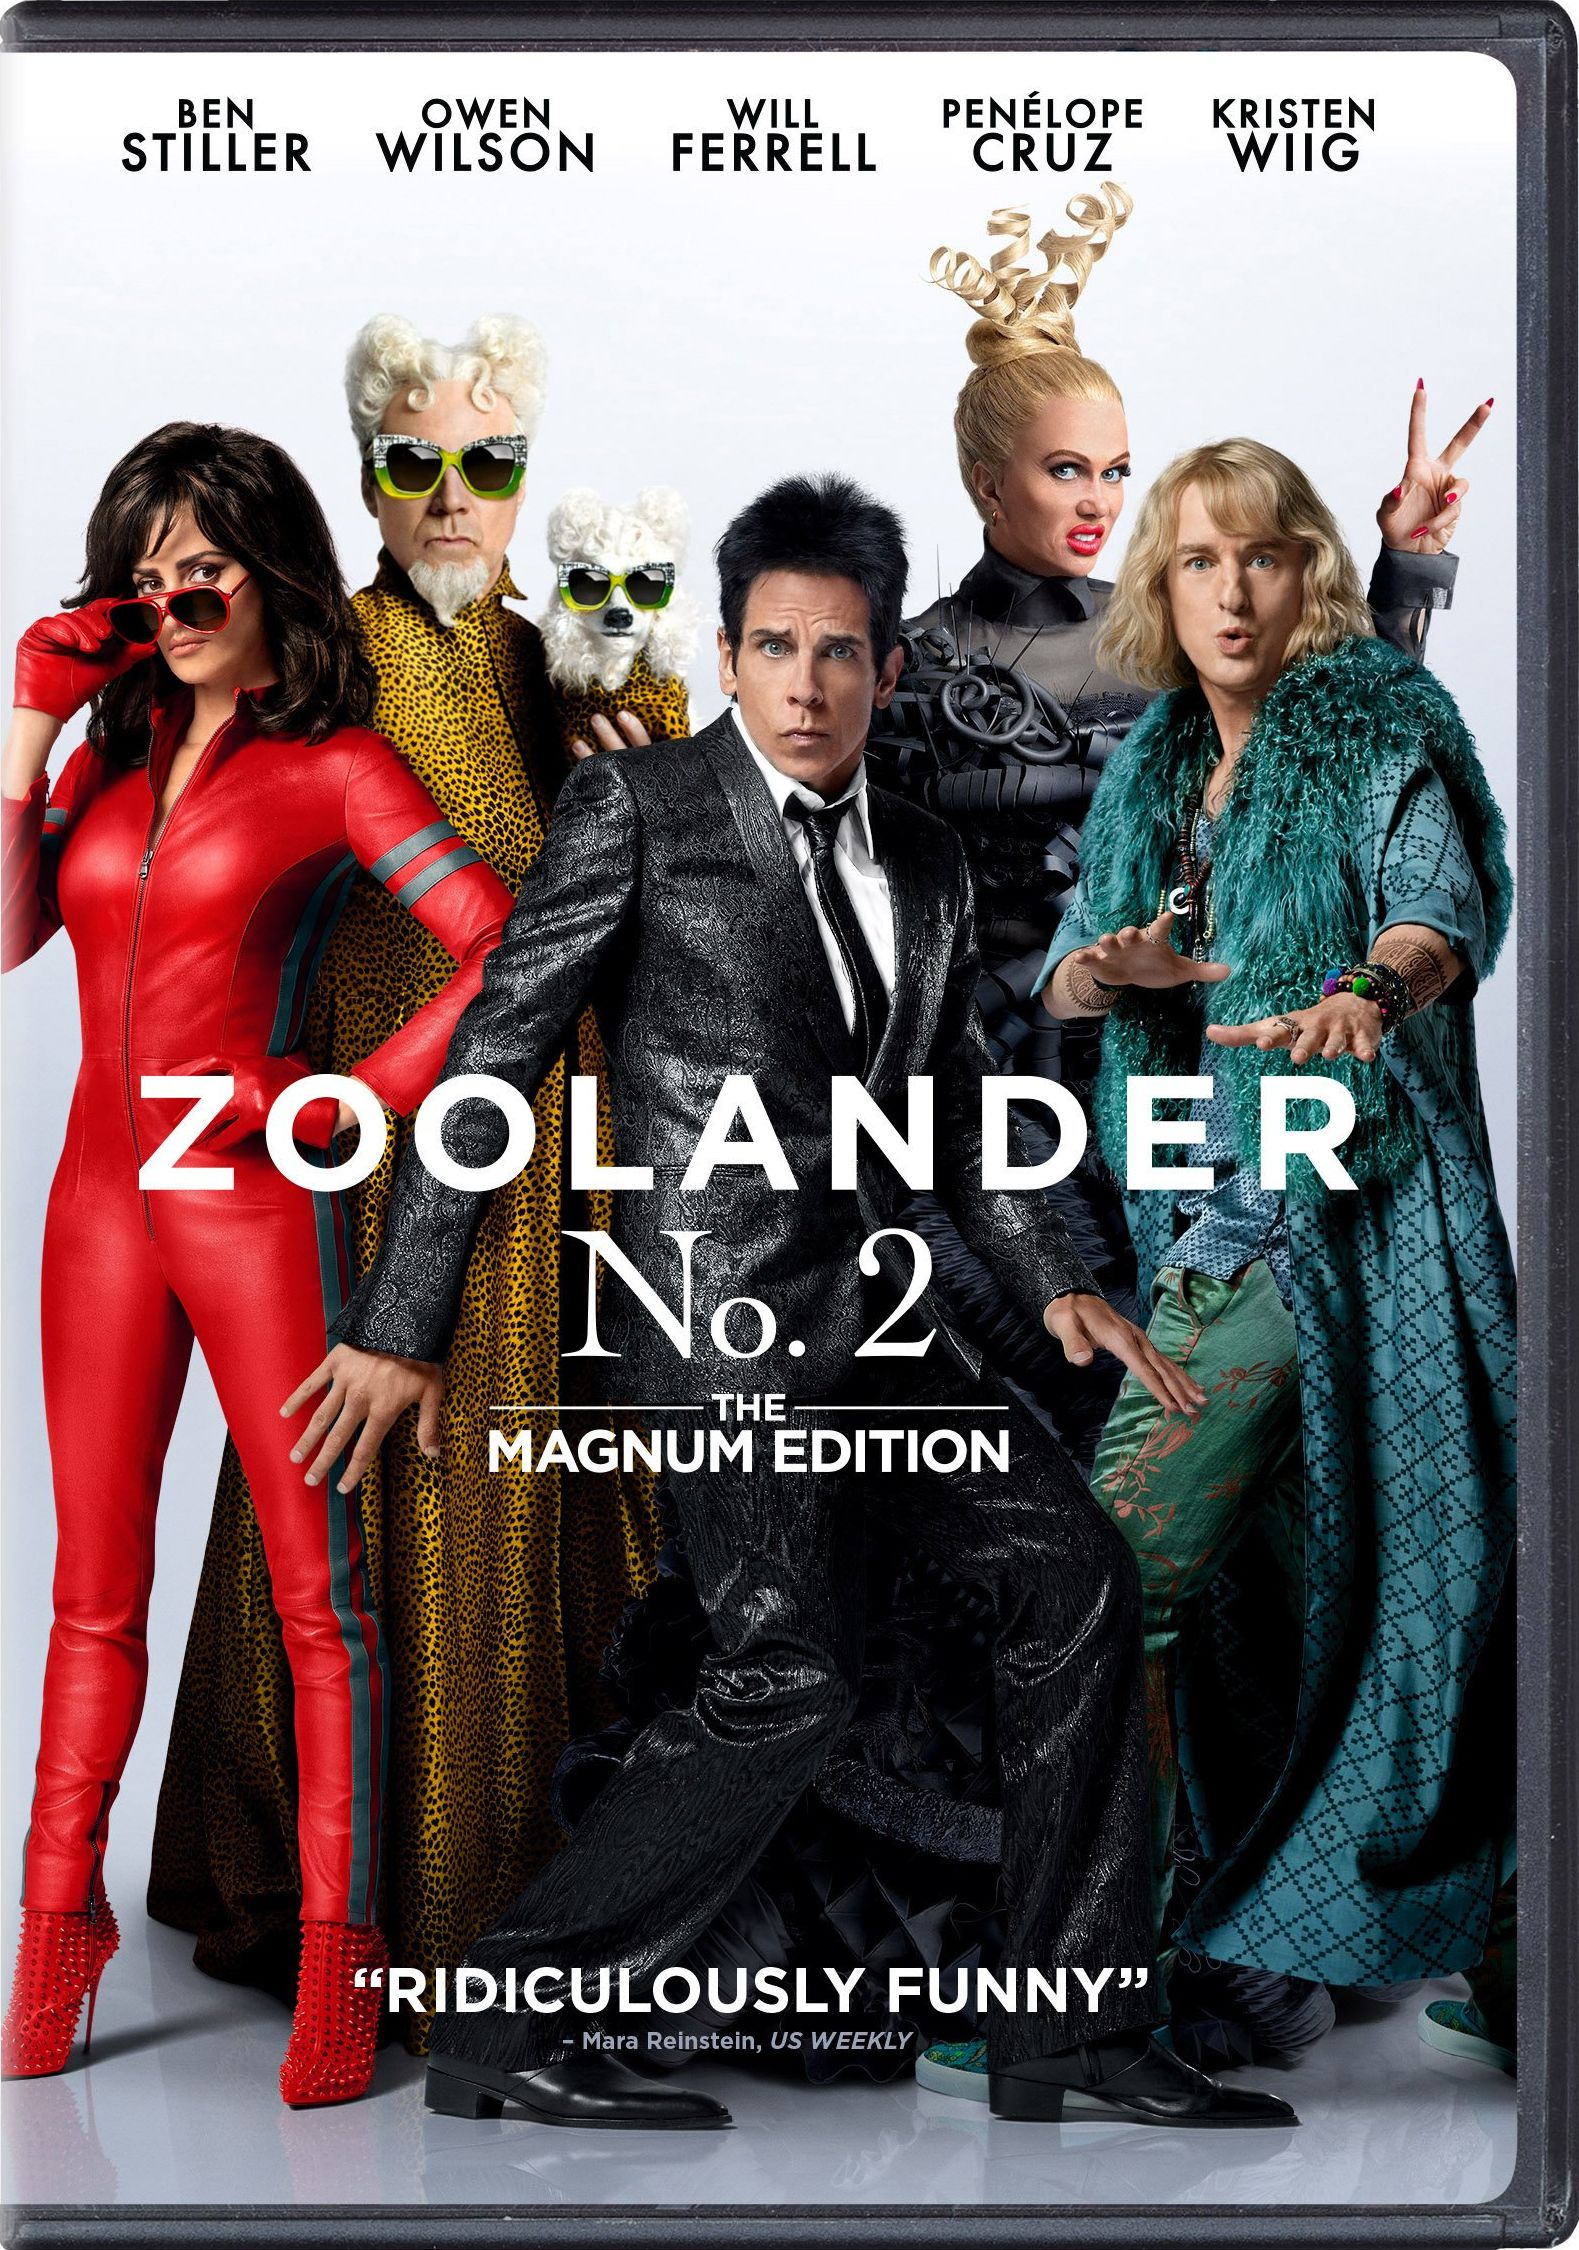 Zoolander 2 DVD Release Date May 24, 2016.